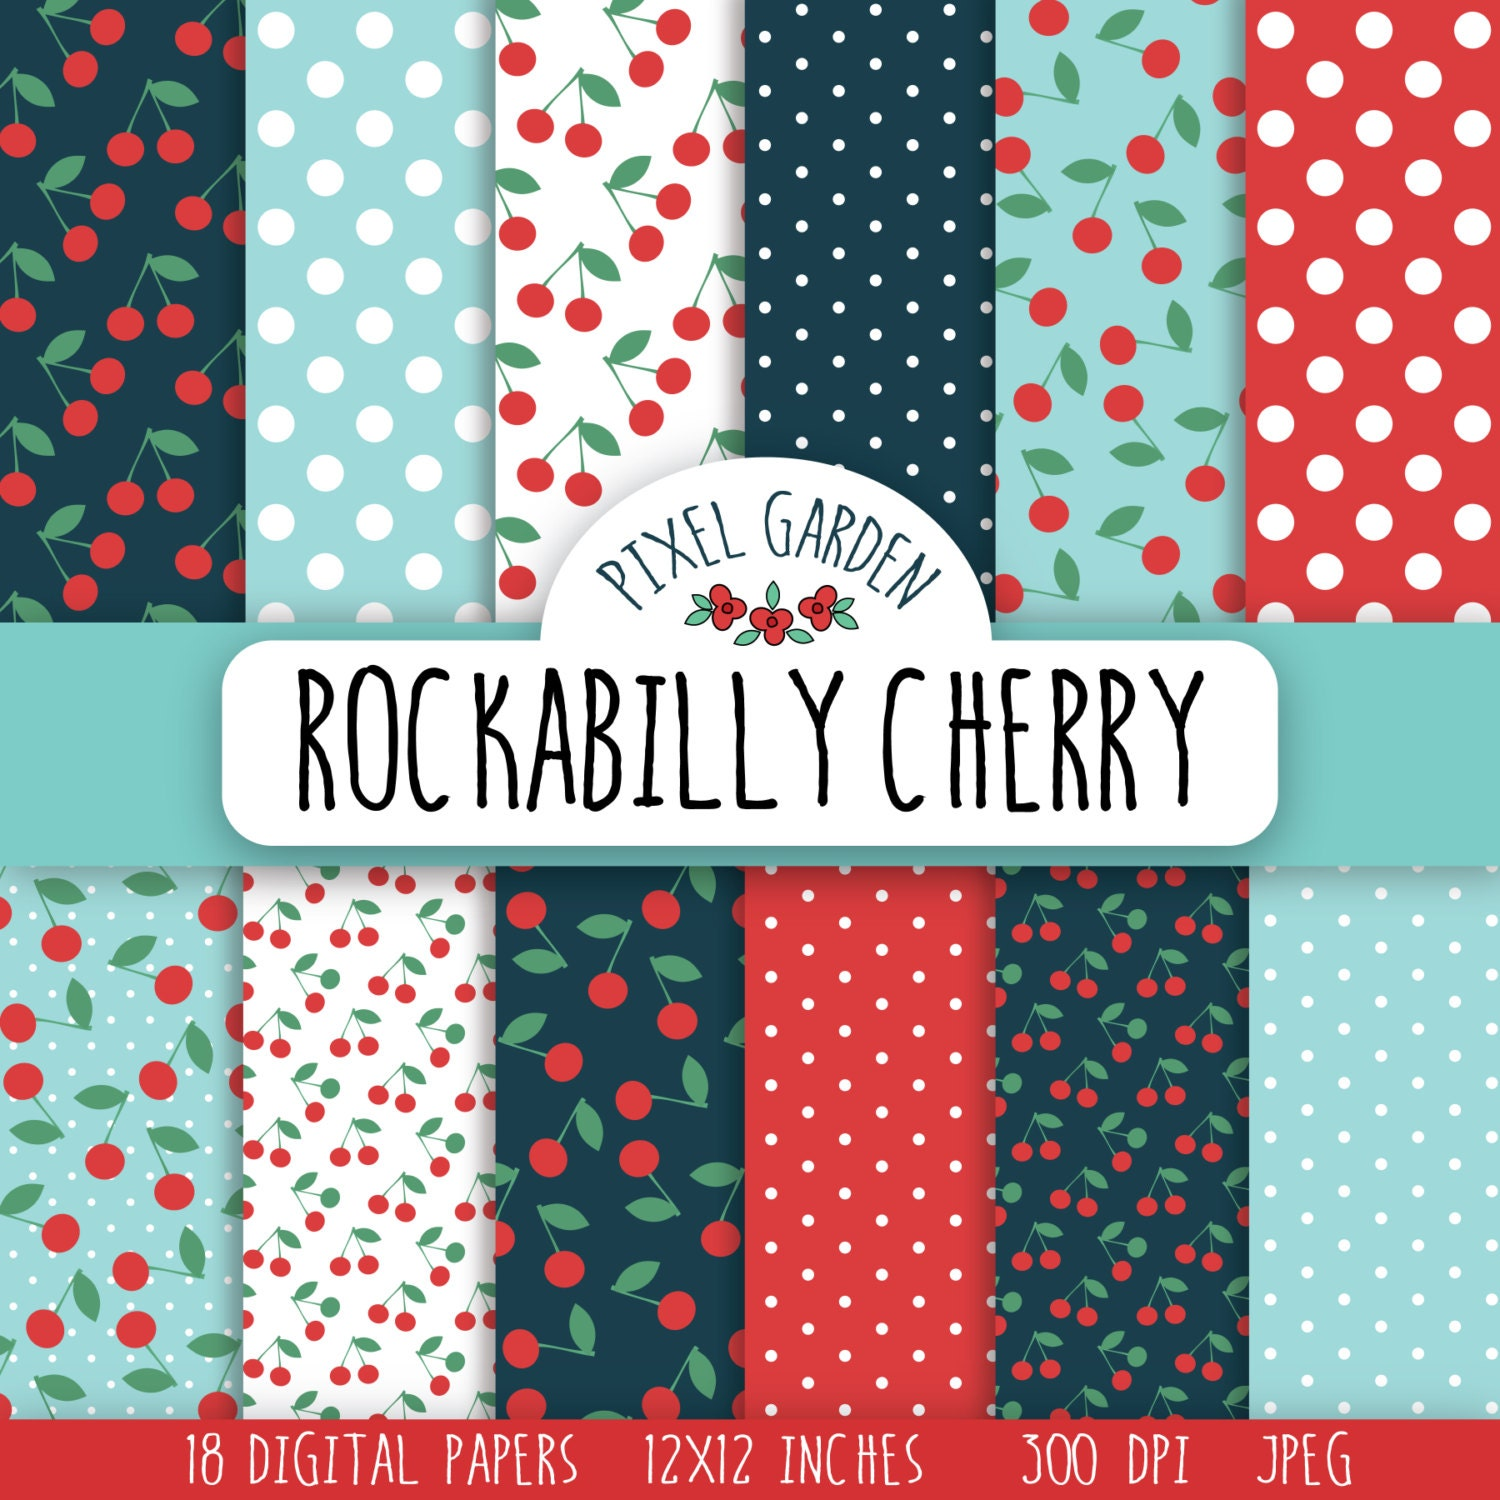 Rockabilly Cherry Digital Paper Pack Retro Cherry